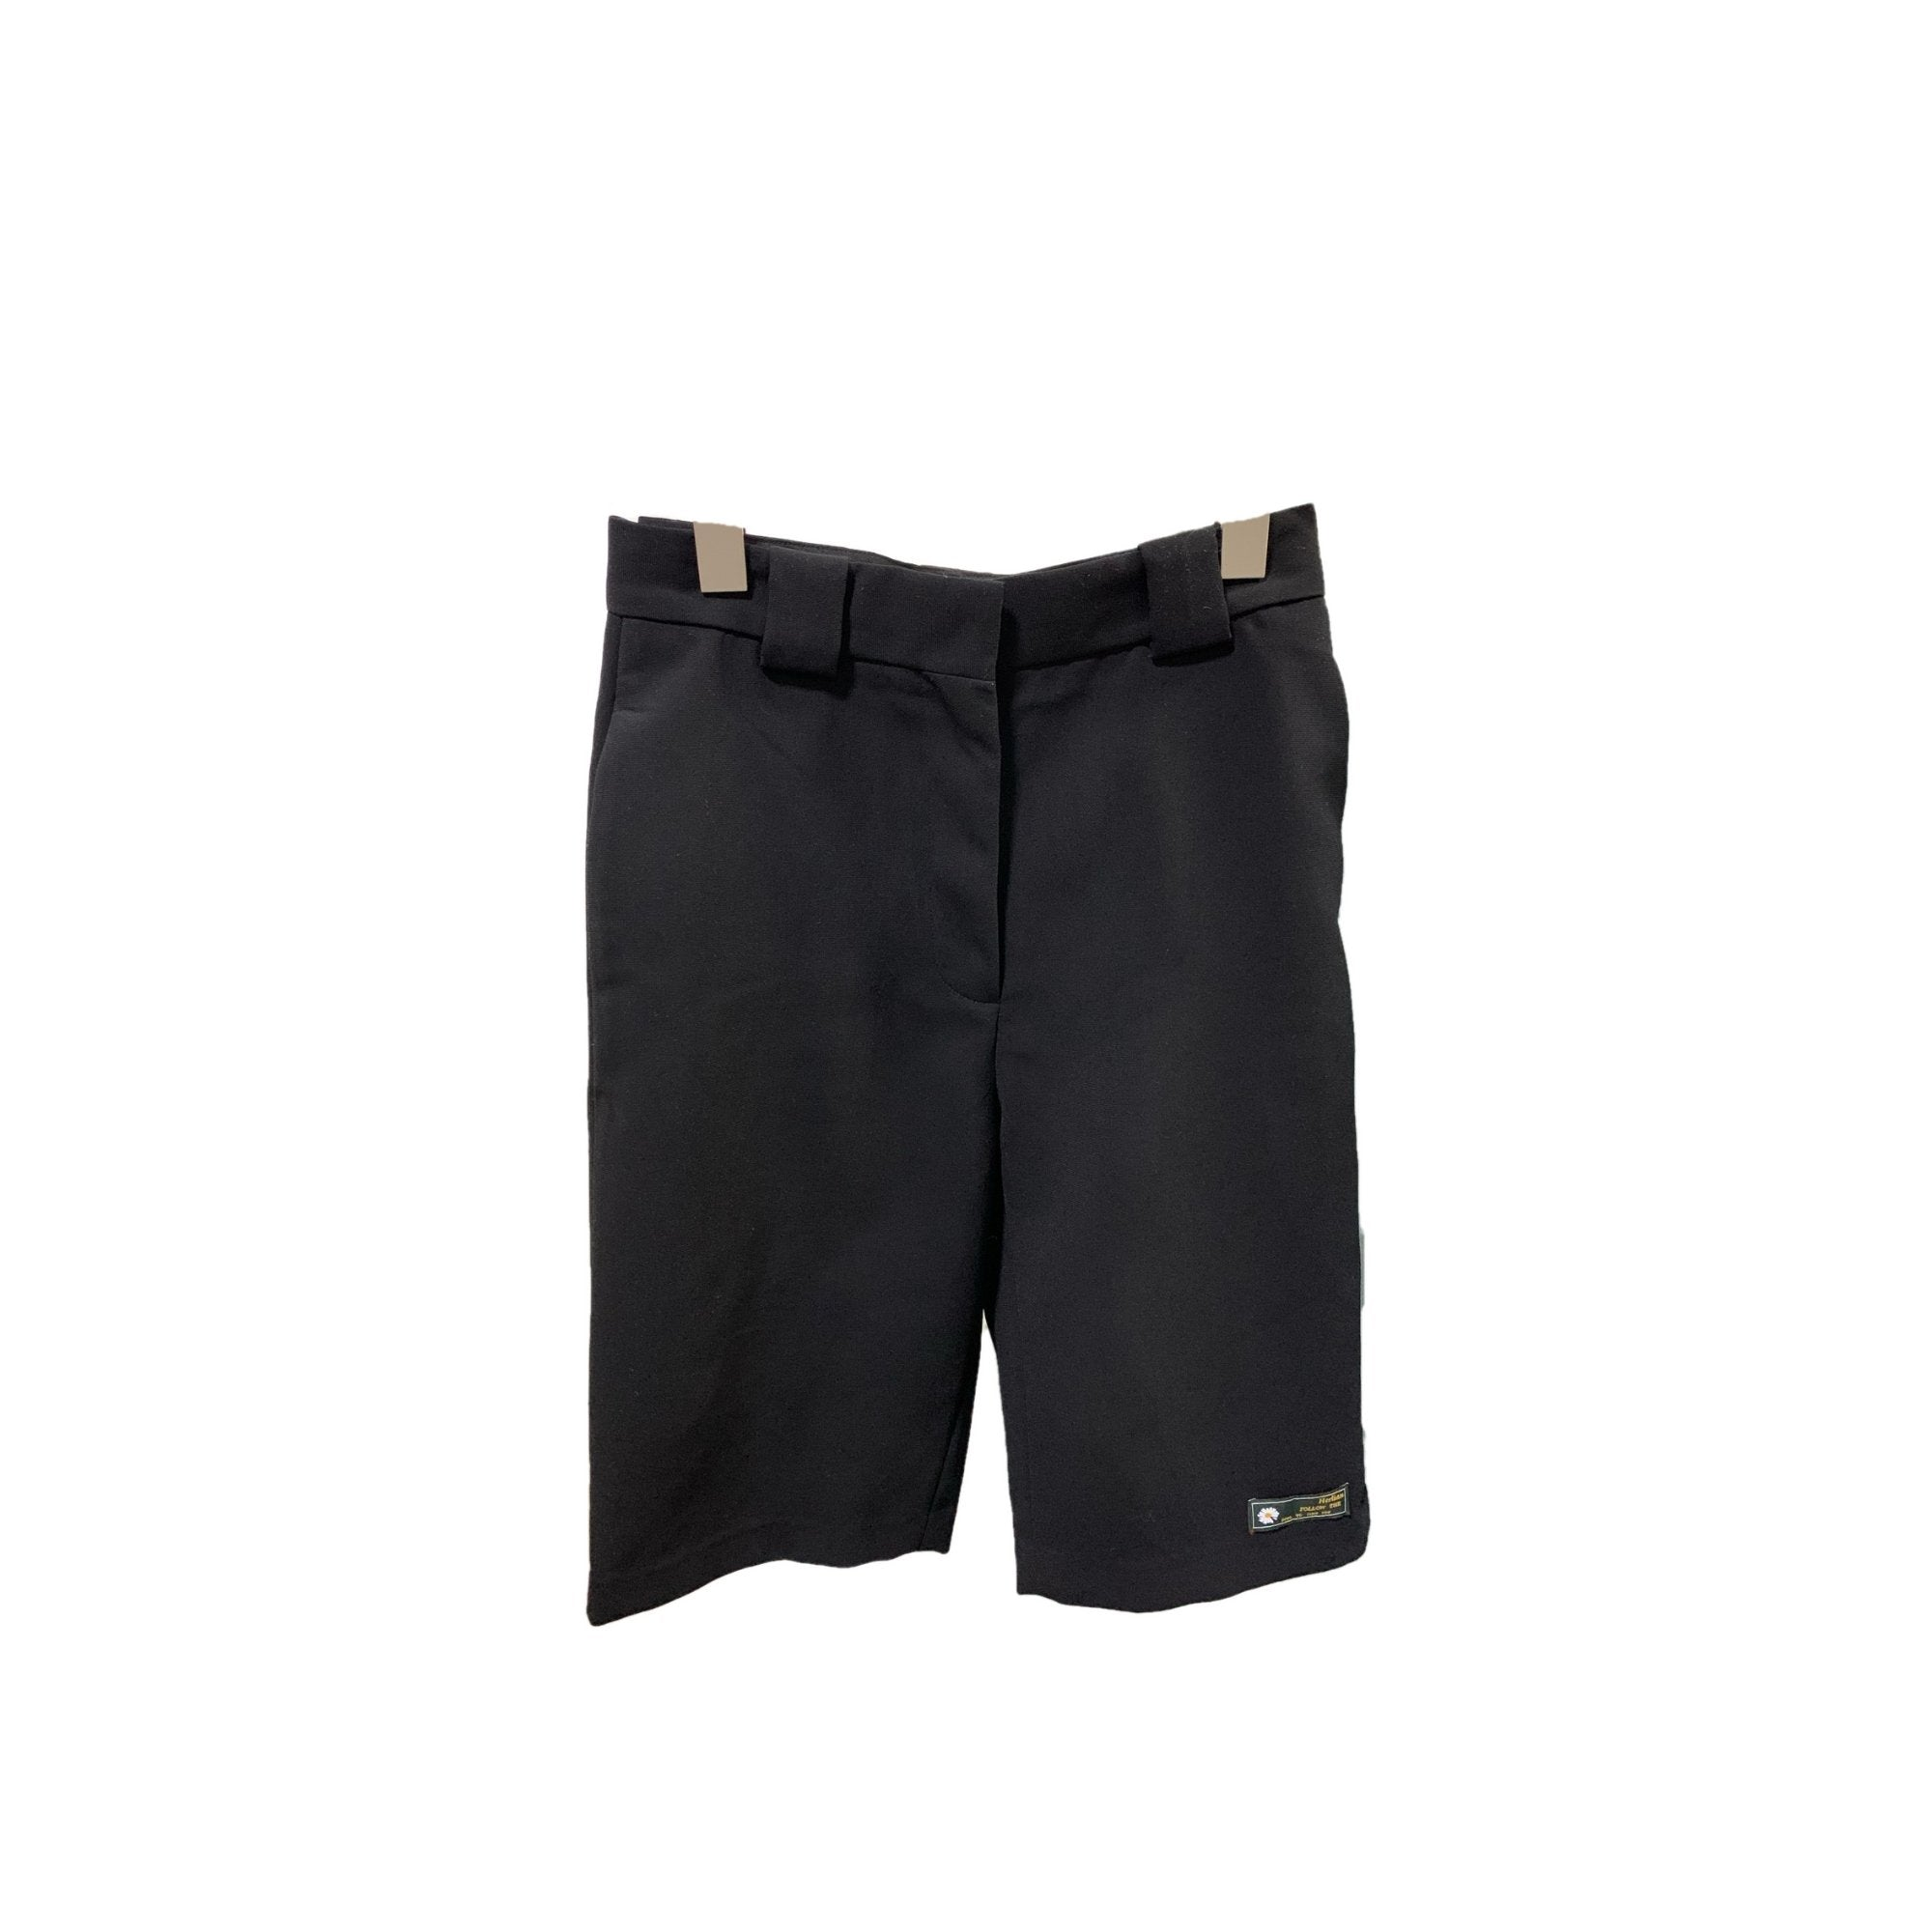 HERLIAN Bermuda Suit Shorts | MADA IN CHINA